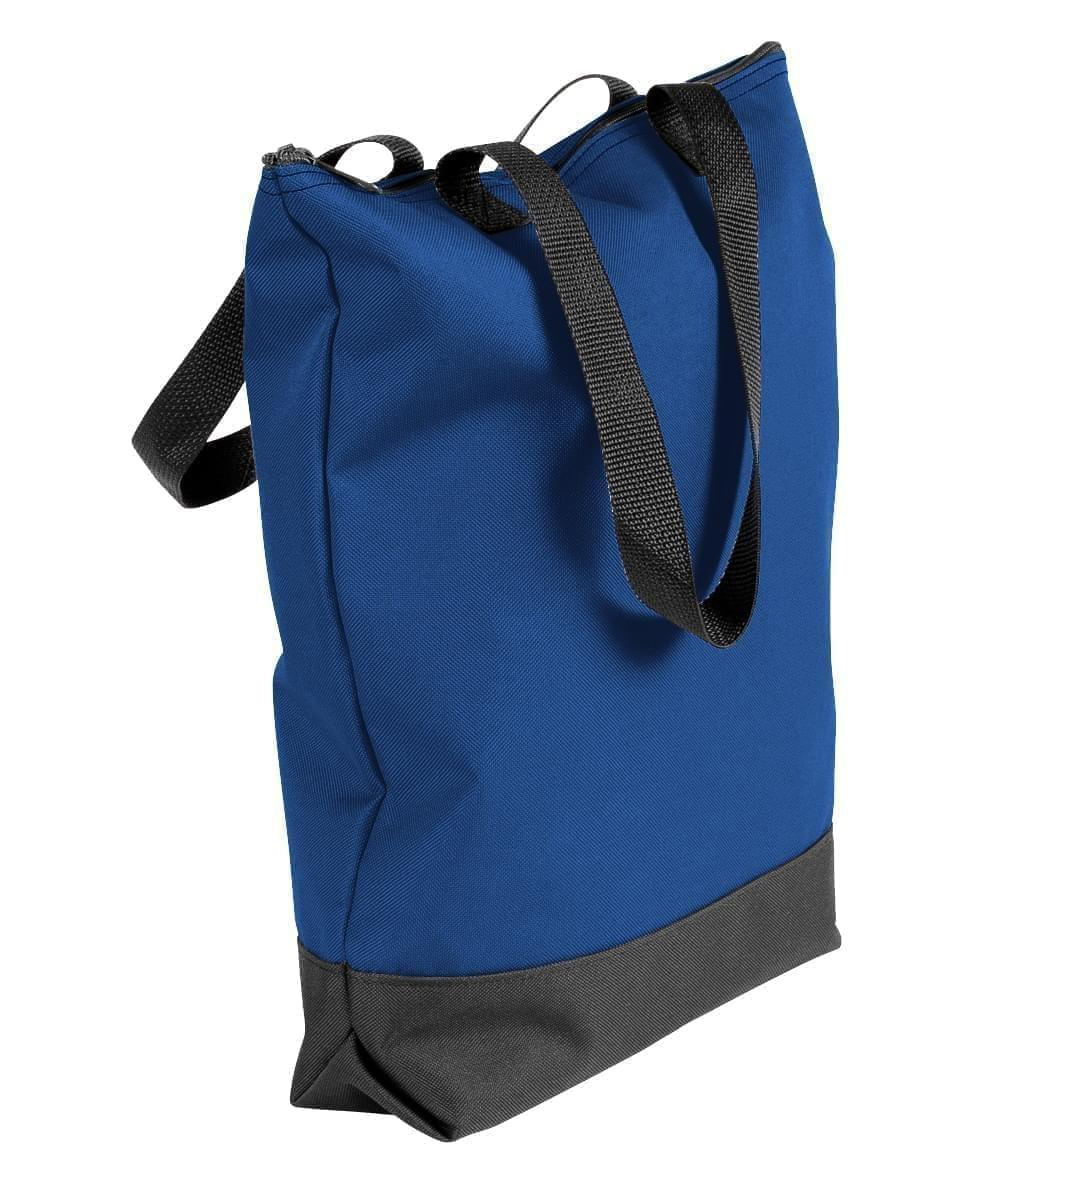 USA Made Poly Notebook Tote Bags, Royal Blue-Black, 1AAMX1UA0R